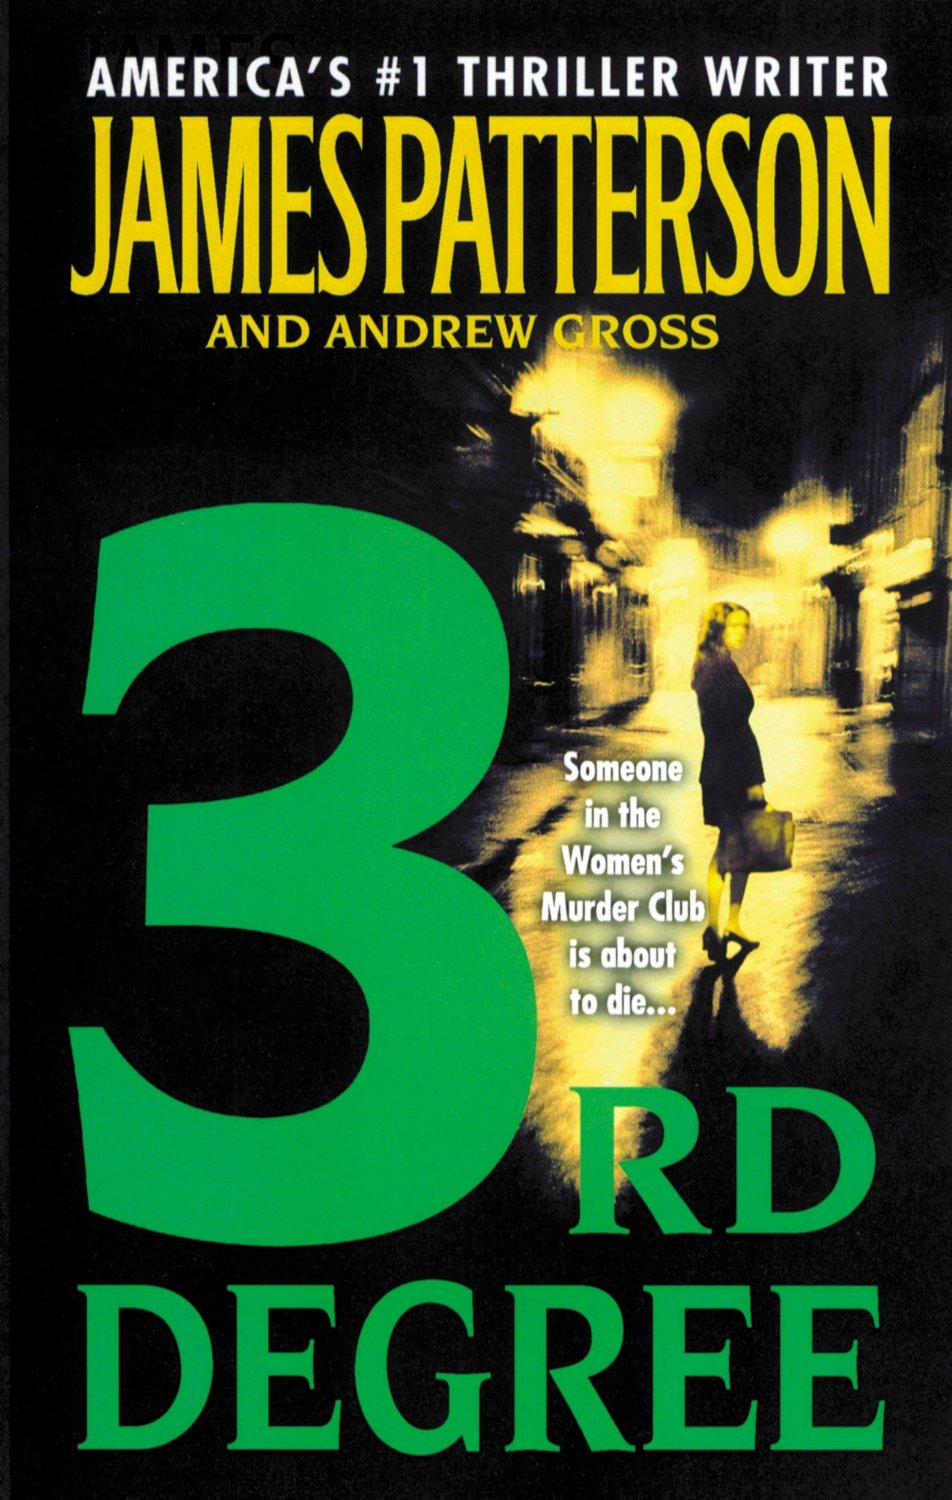 3RD DEGREE - PATTERSON, JAMES/ GROSS, ANDREW - NEW PAPERBACK BOOK